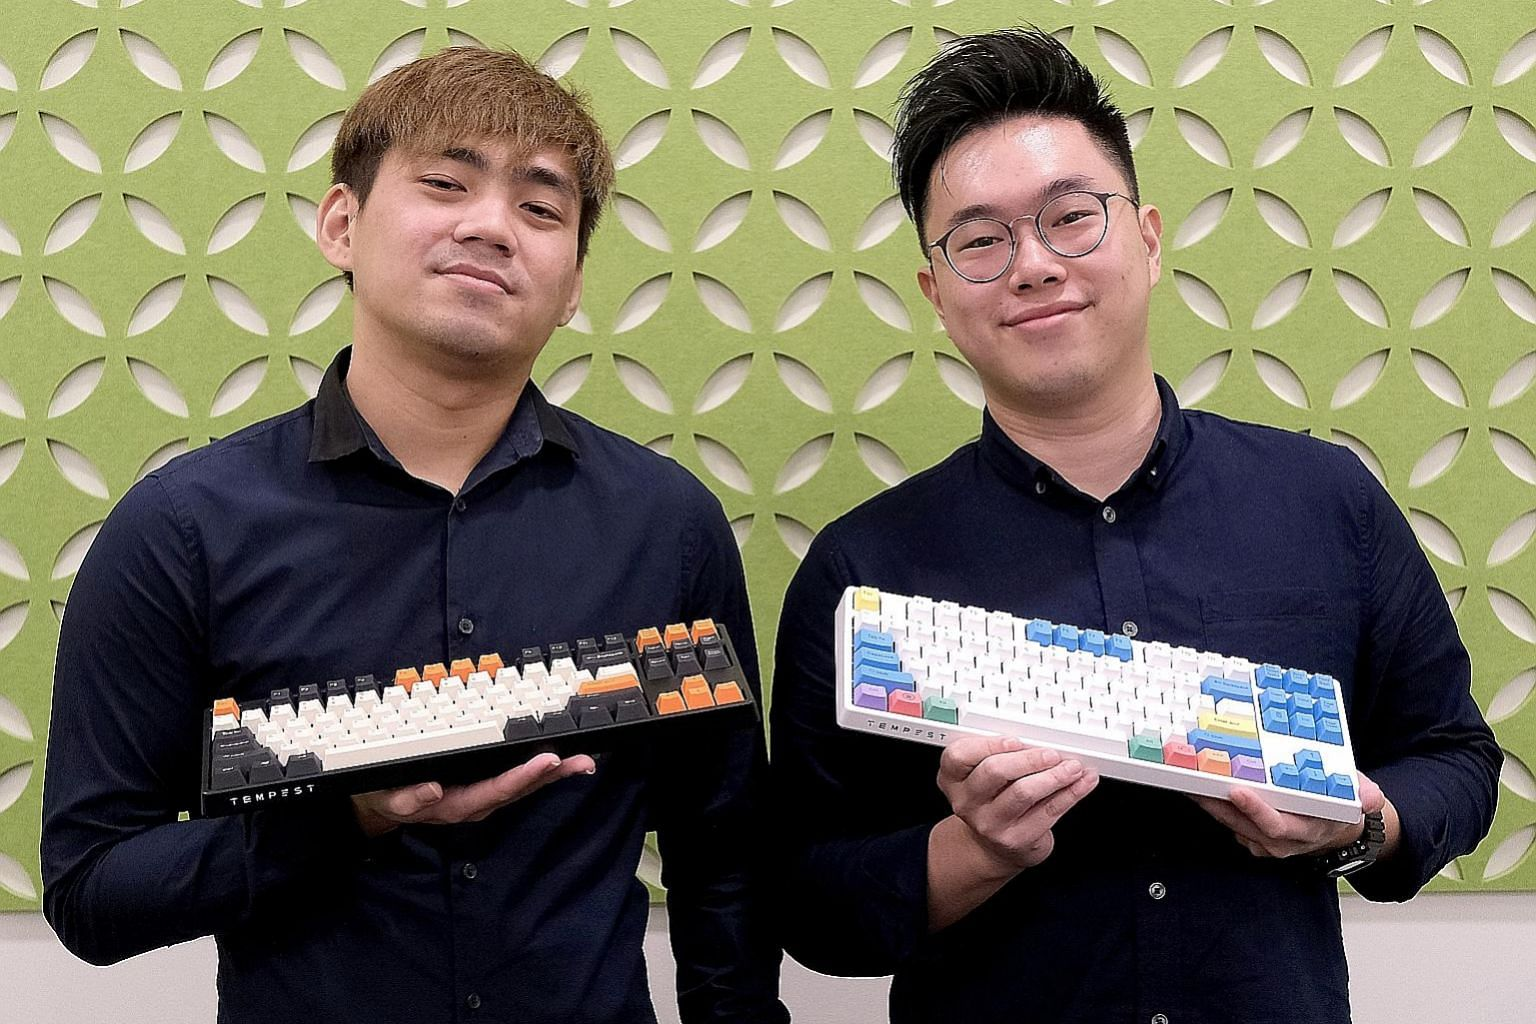 Local tech start-up Tempest co-founders Eric Heng (left) and Ben Hui with the brand's Kirin keyboards, which were launched last month. The third co-founder, Issac Yuen, was not at the photo shoot.